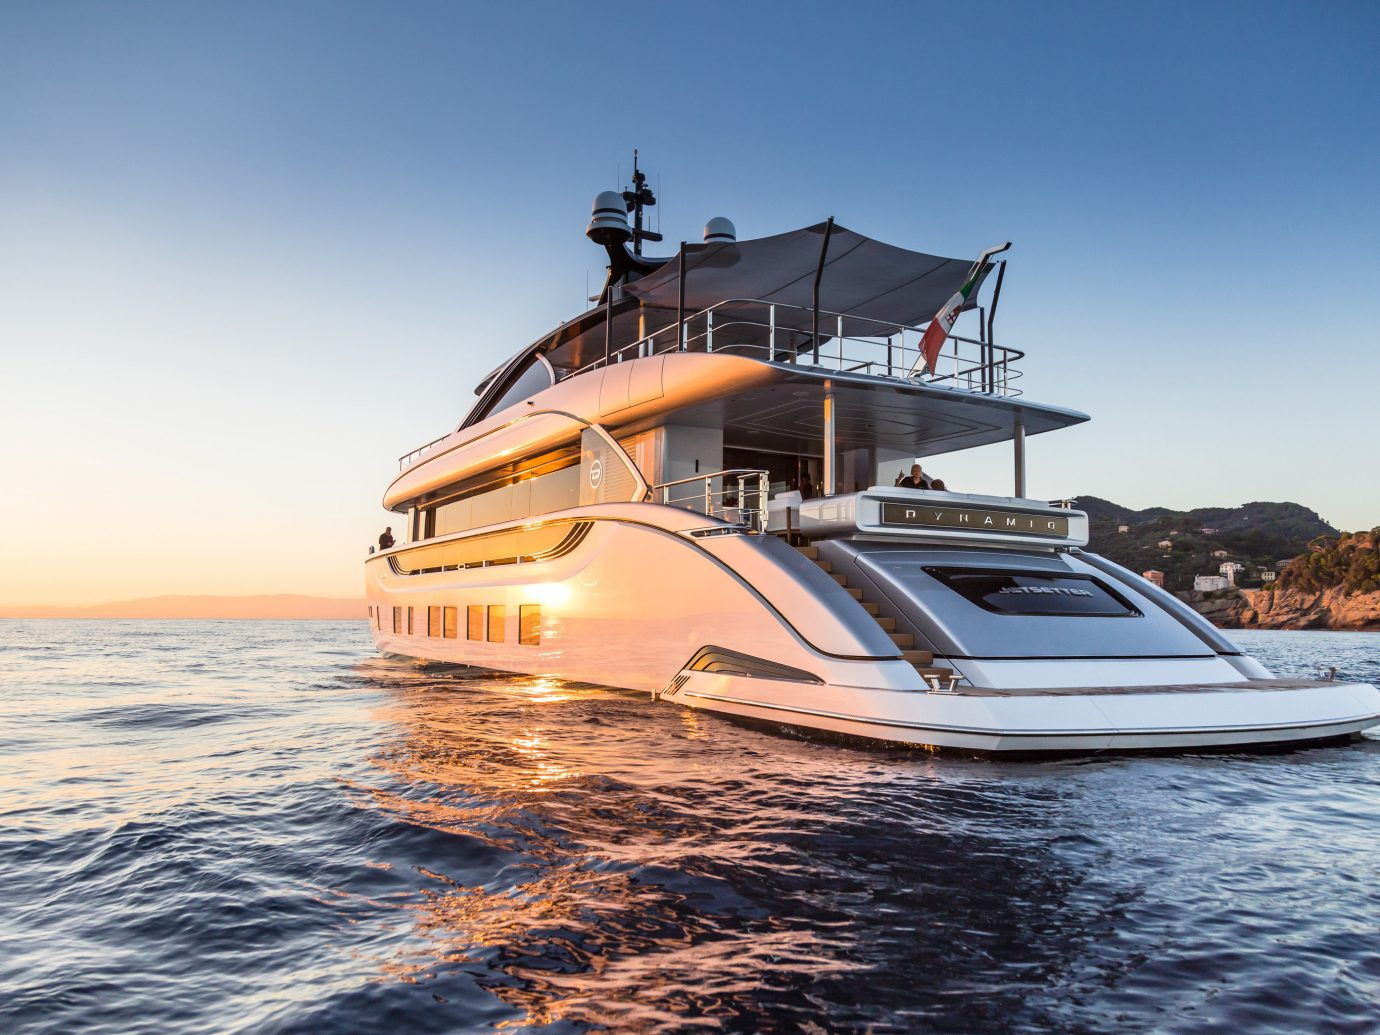 Luxury Travel Trip Ideas sky water outdoor Boat vehicle luxury yacht passenger ship ship motor ship yacht ecosystem watercraft Sea motorboat boating